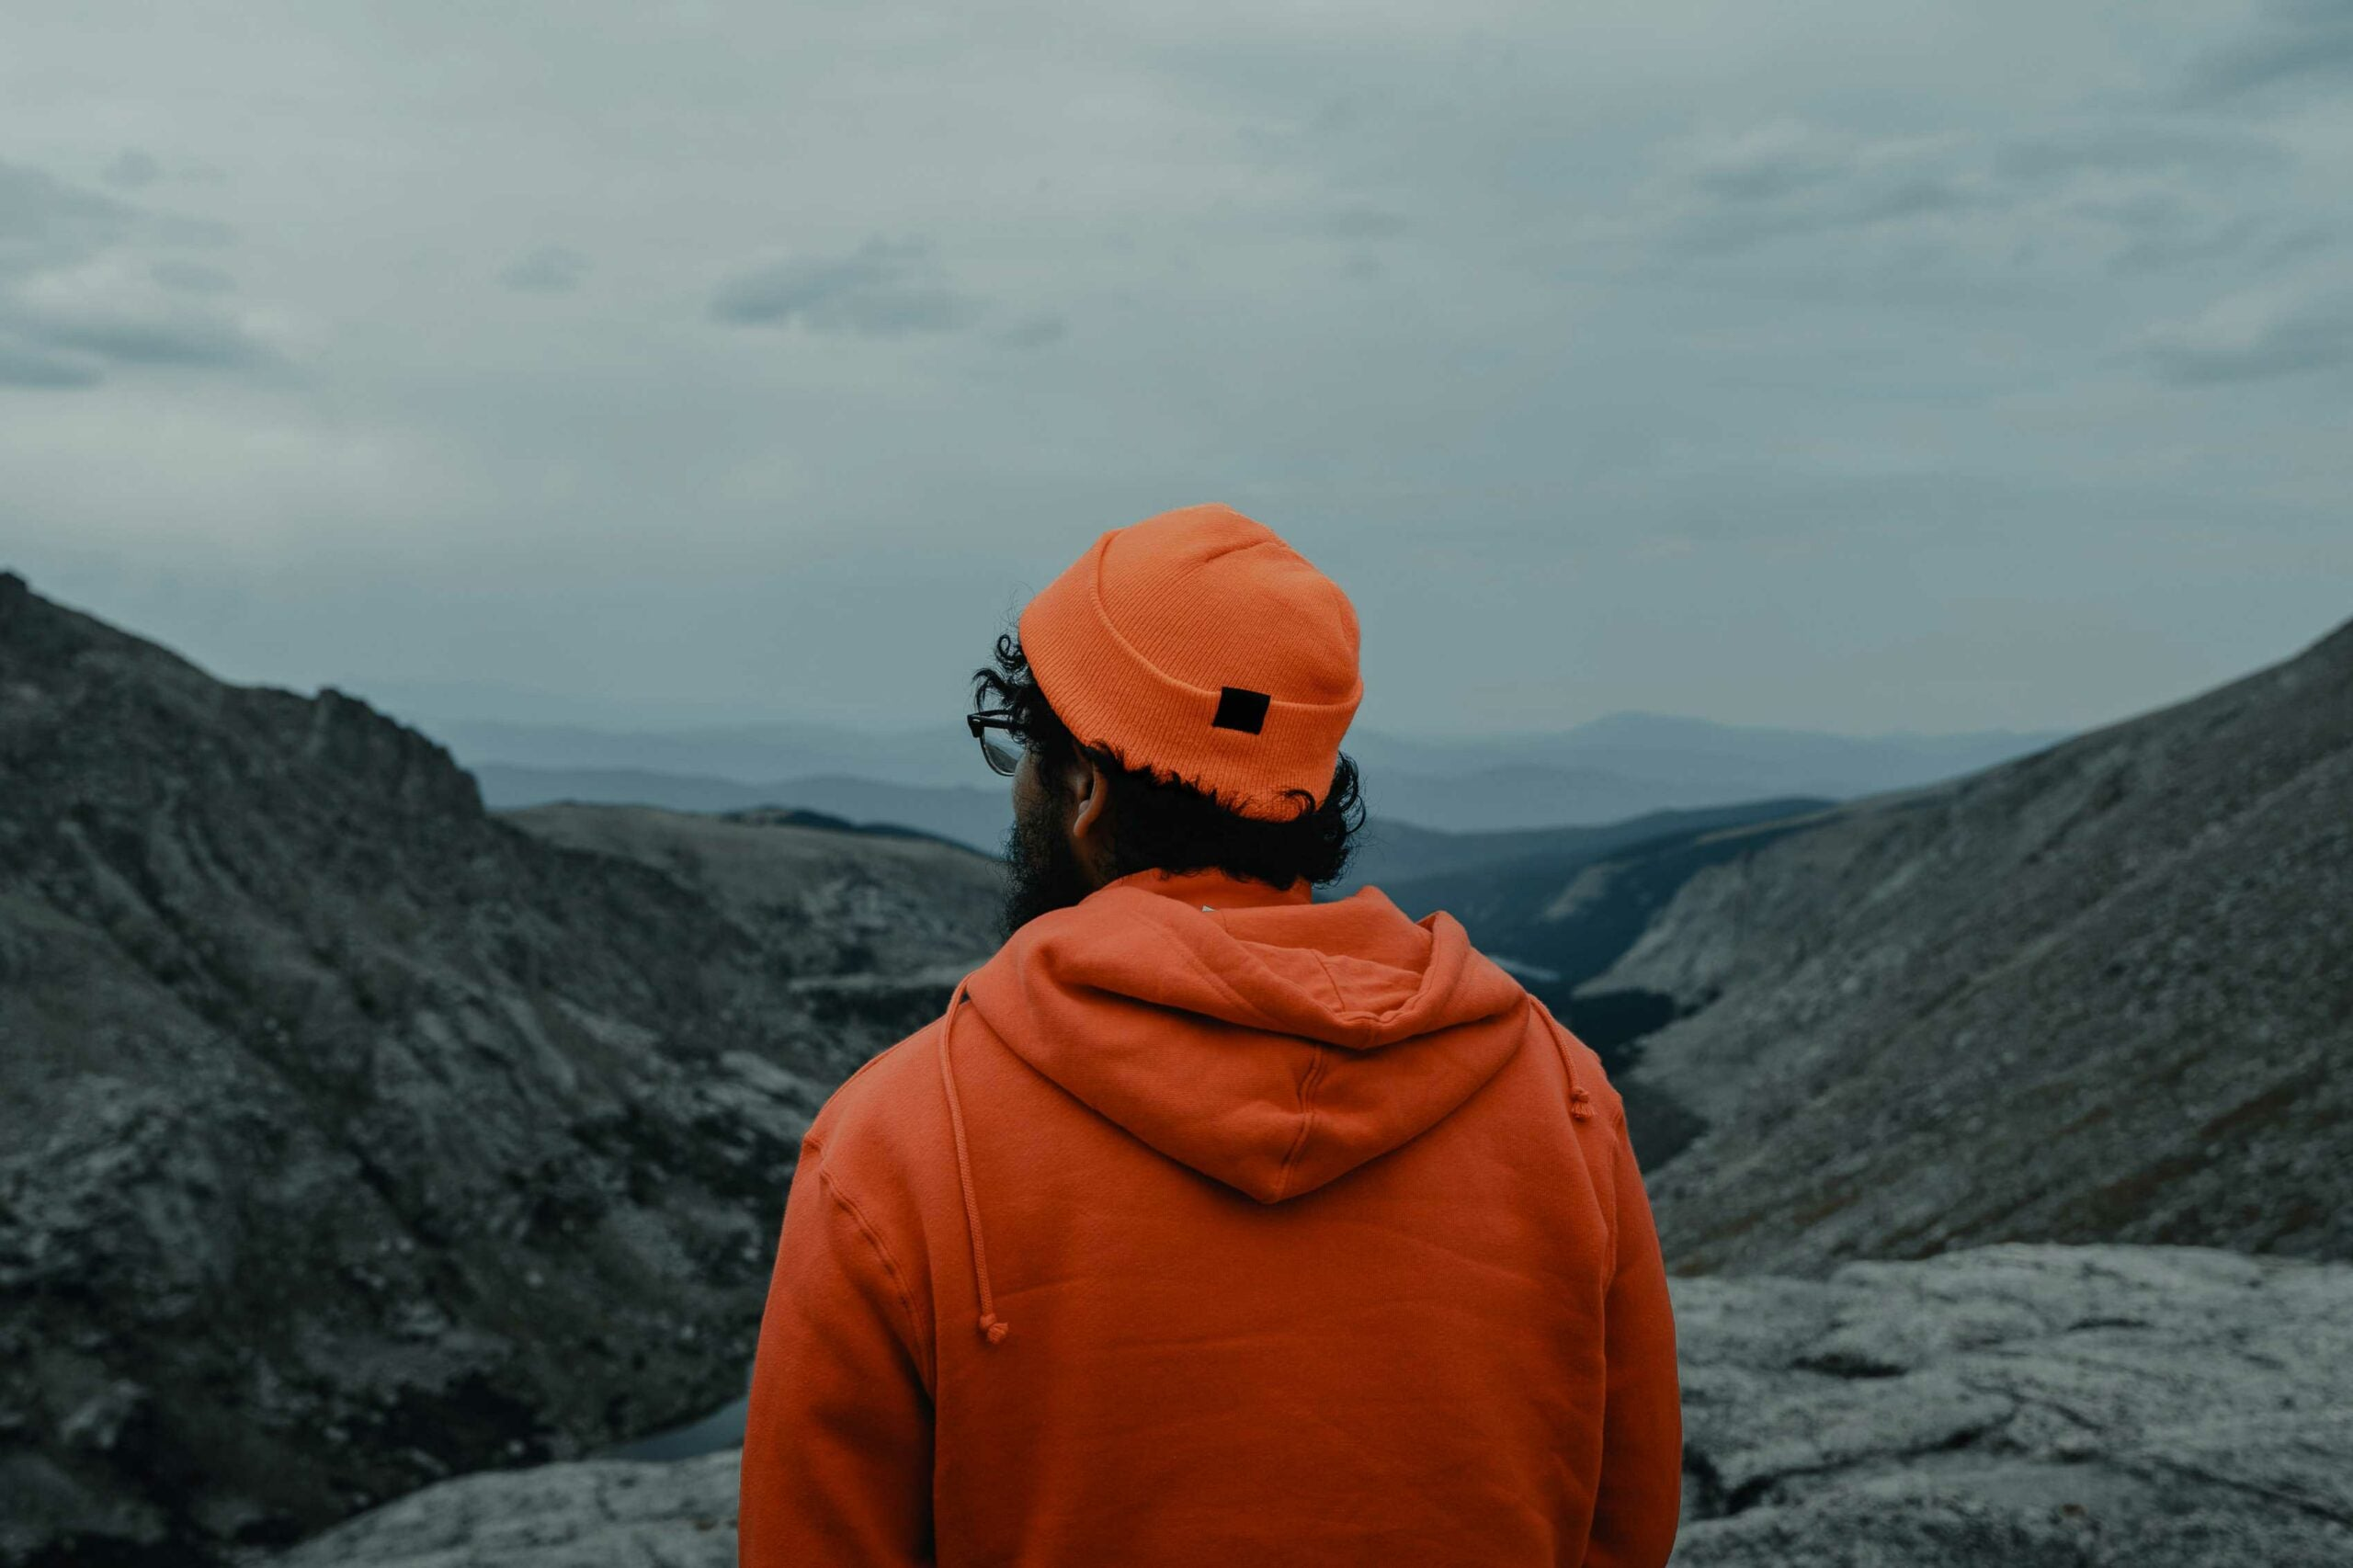 Men in an orange hat and sweatshirt staring over a mountaintop